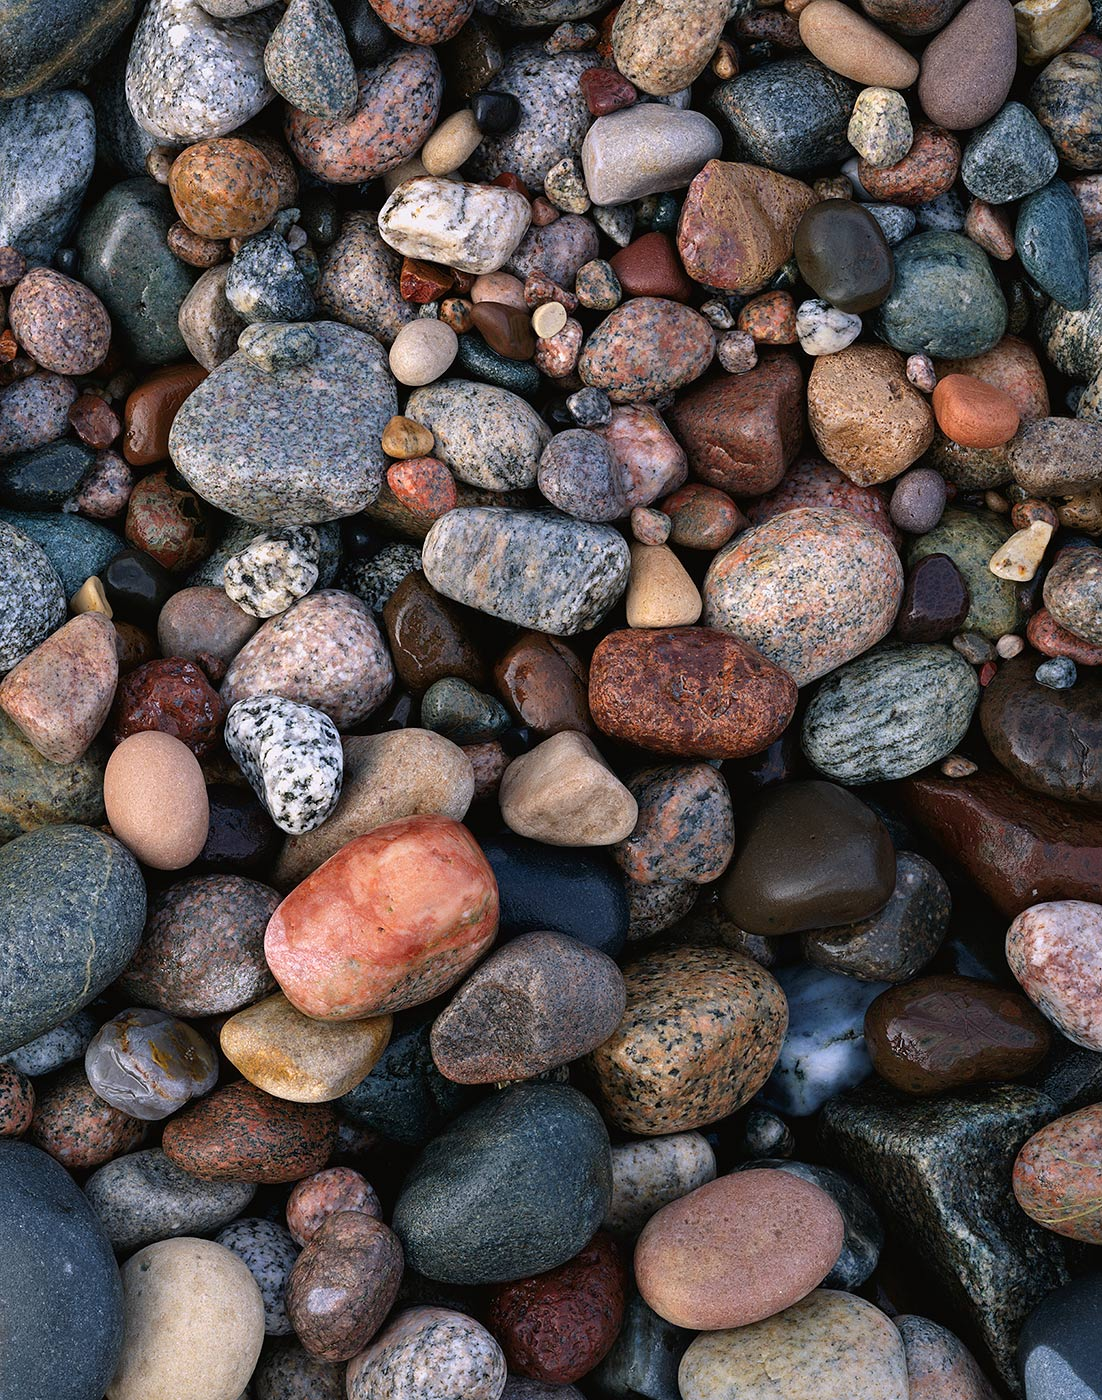 908 Pebbles & Stones, Pictured Rocks National Lakeshore, Michigan